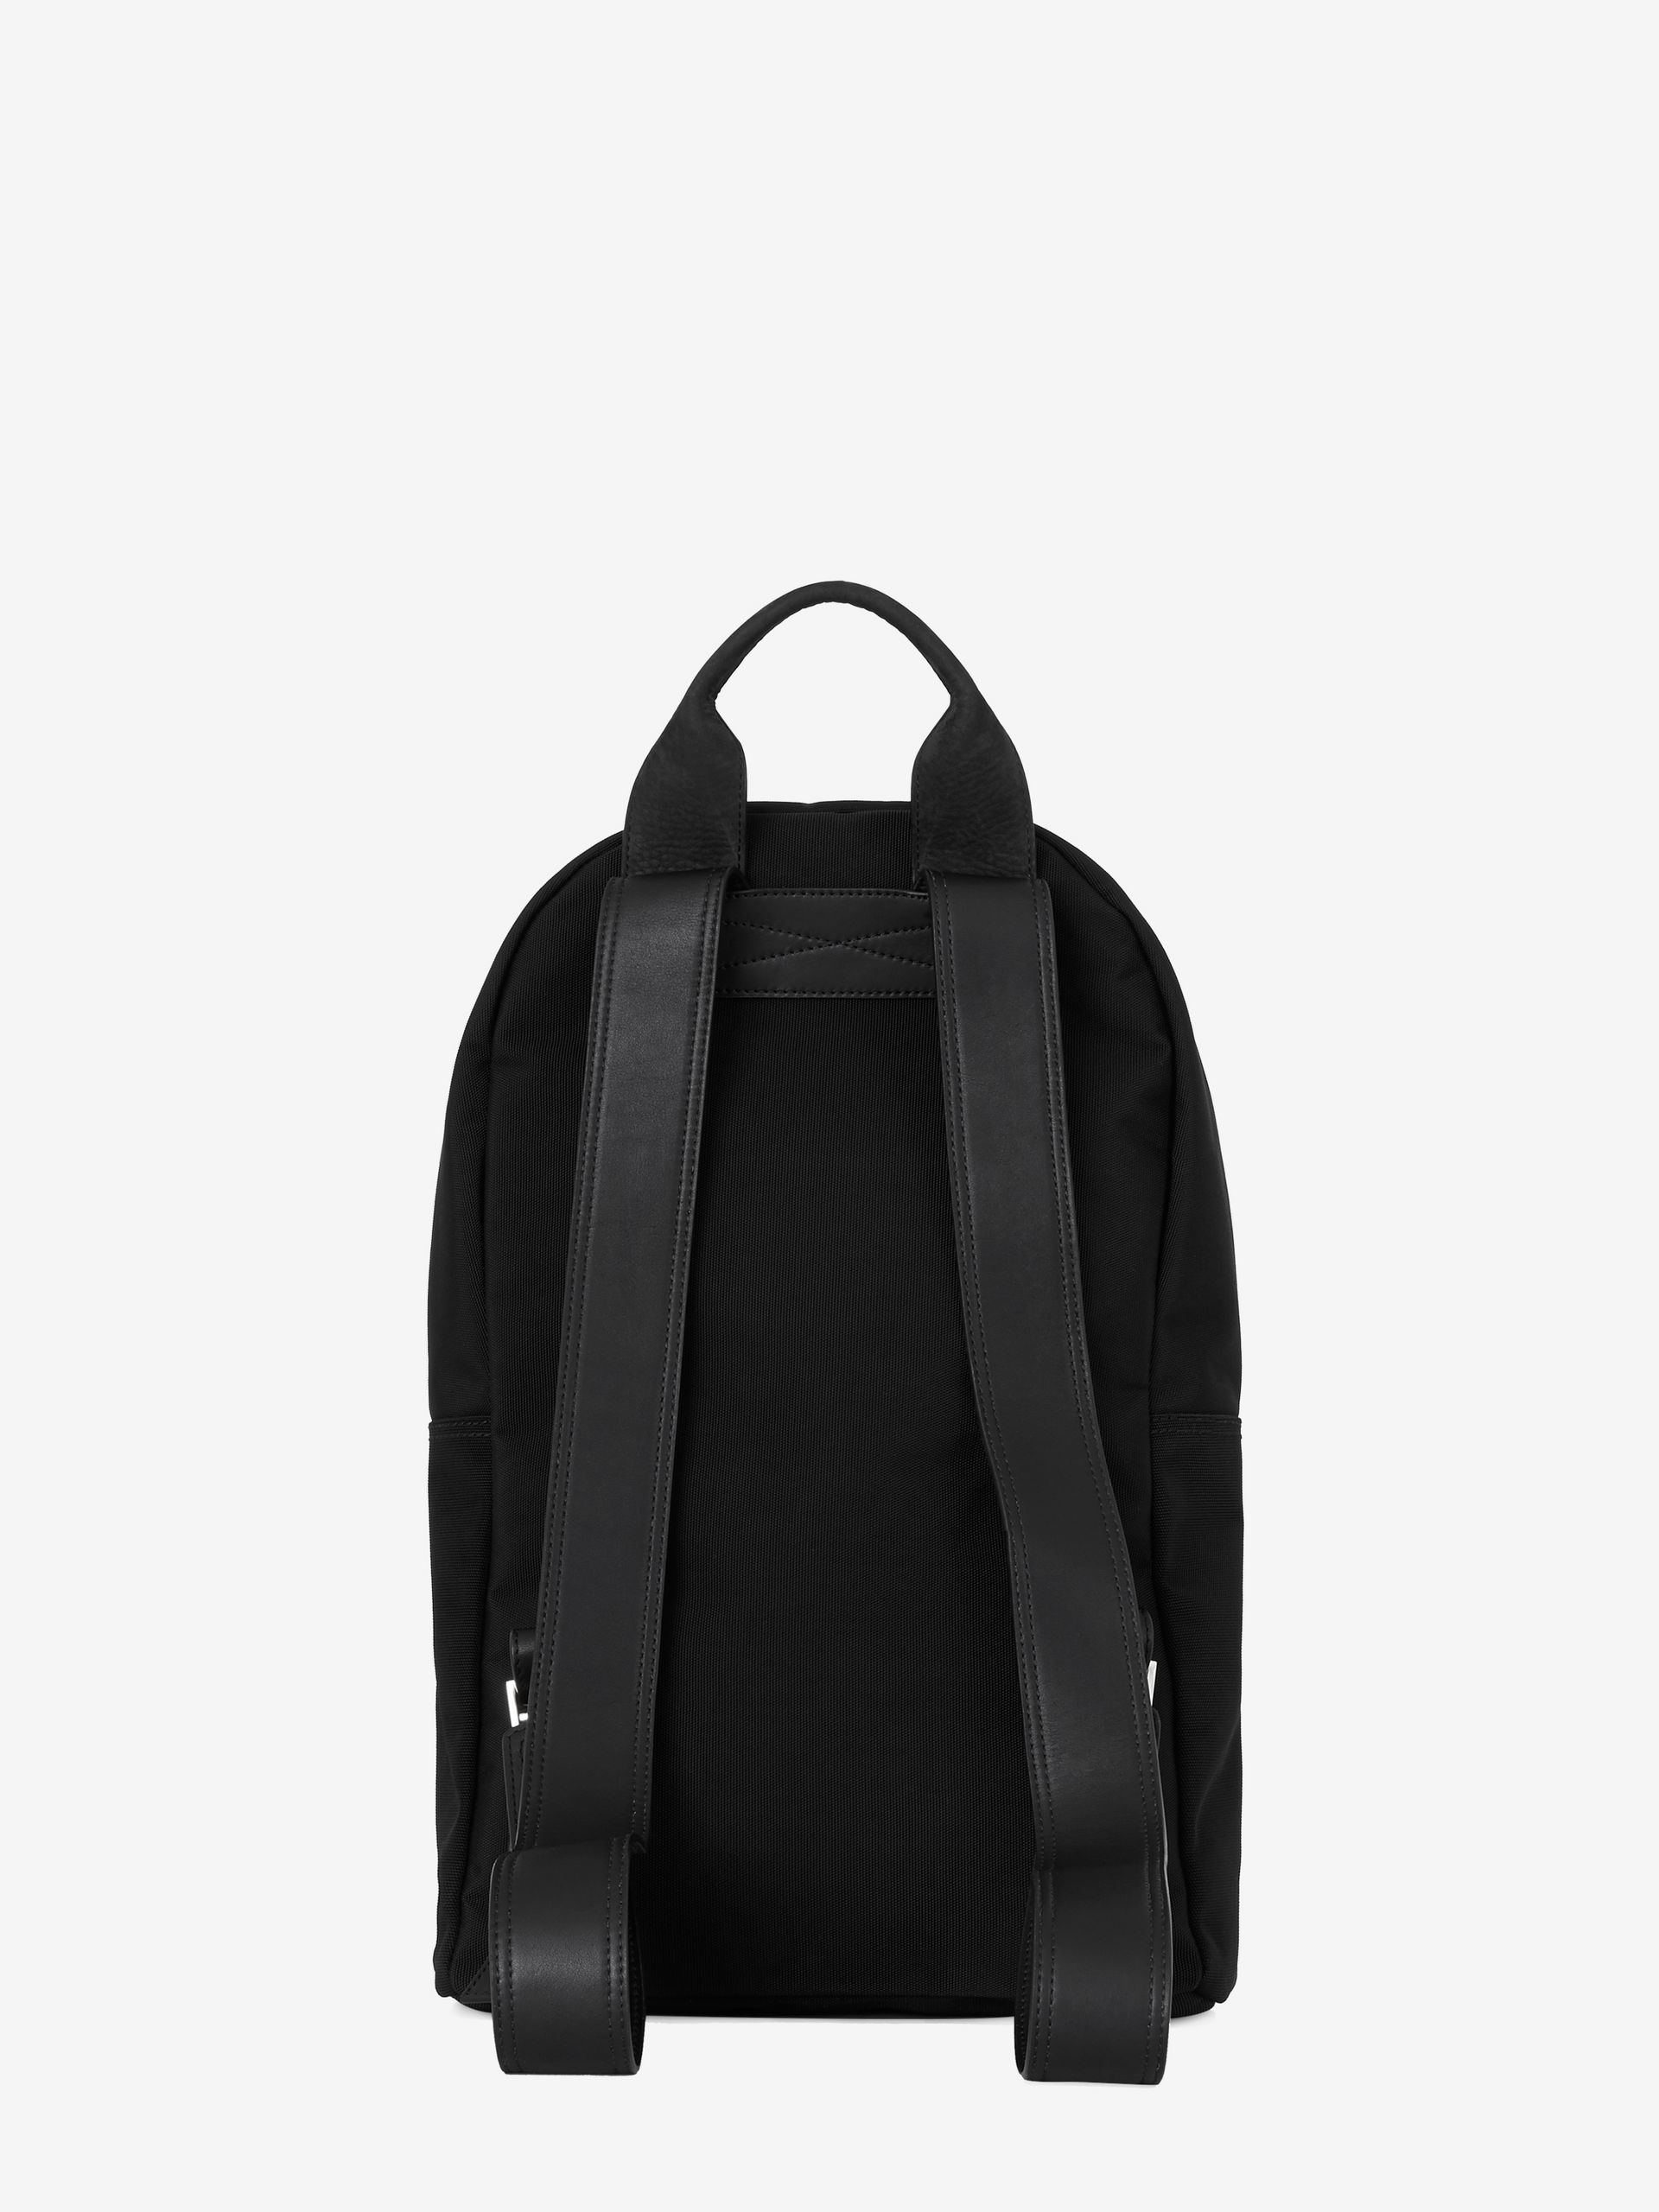 6fff5586e1d Lyst - McQ Tote Backpack in Black for Men